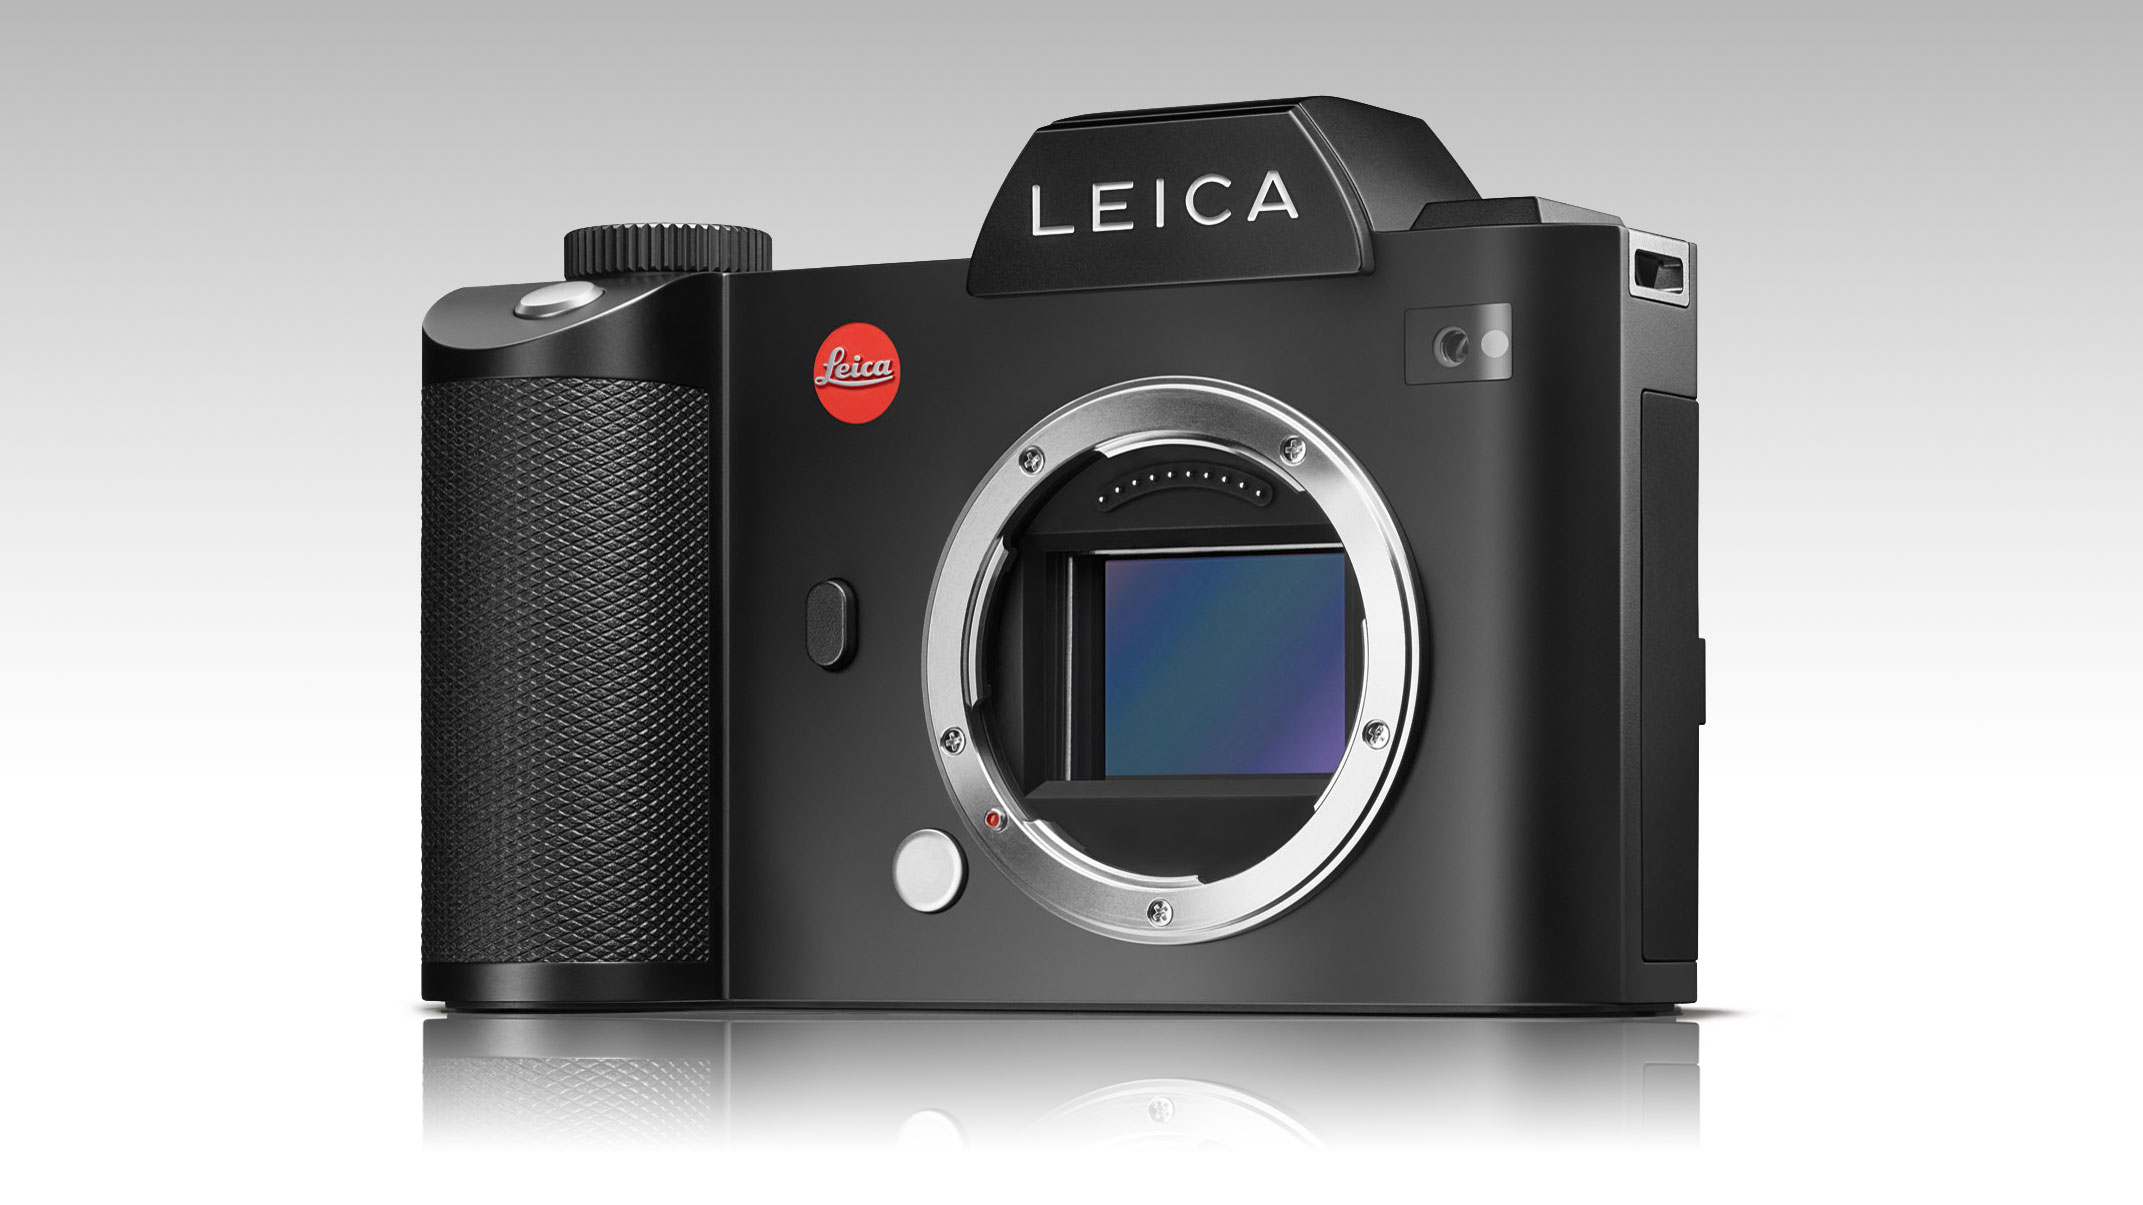 Leica goes mirrorless with a stunning new full frame camera | TechRadar